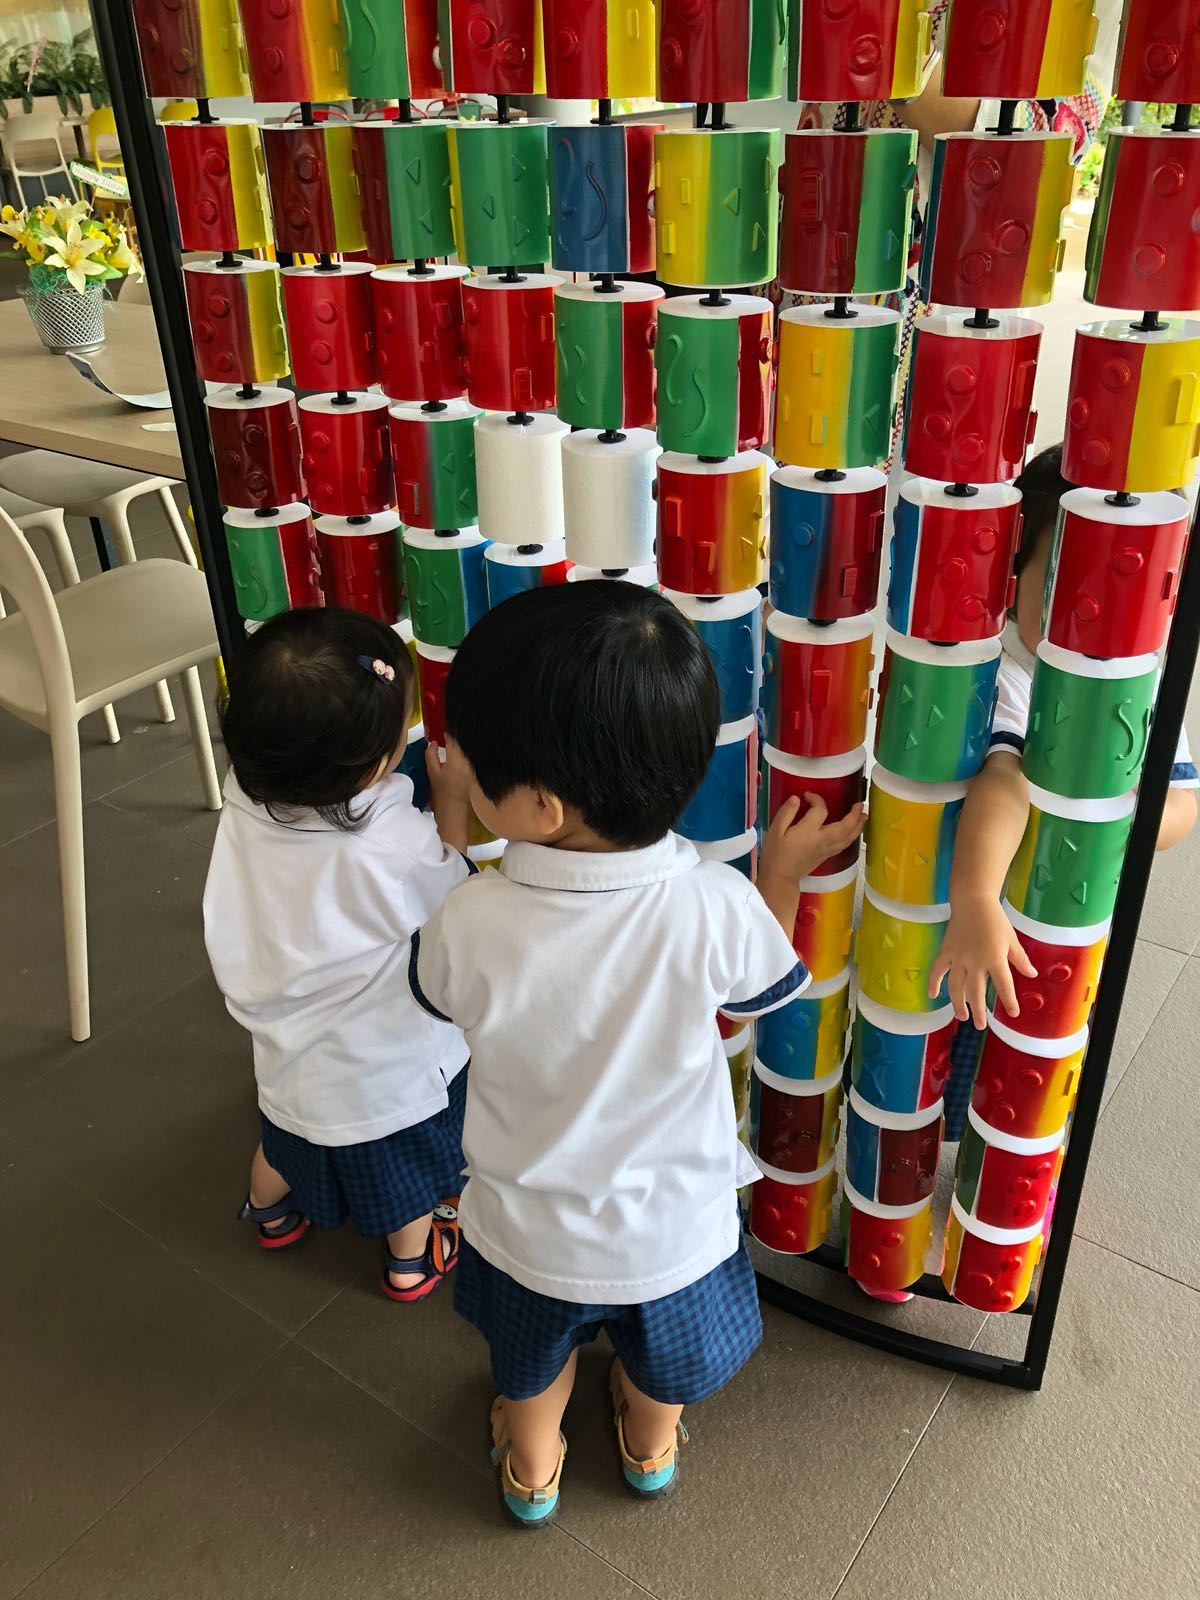 Connects - A Multi-Sensory Intergenerational Engagement Space at NTU ADM Portfolio